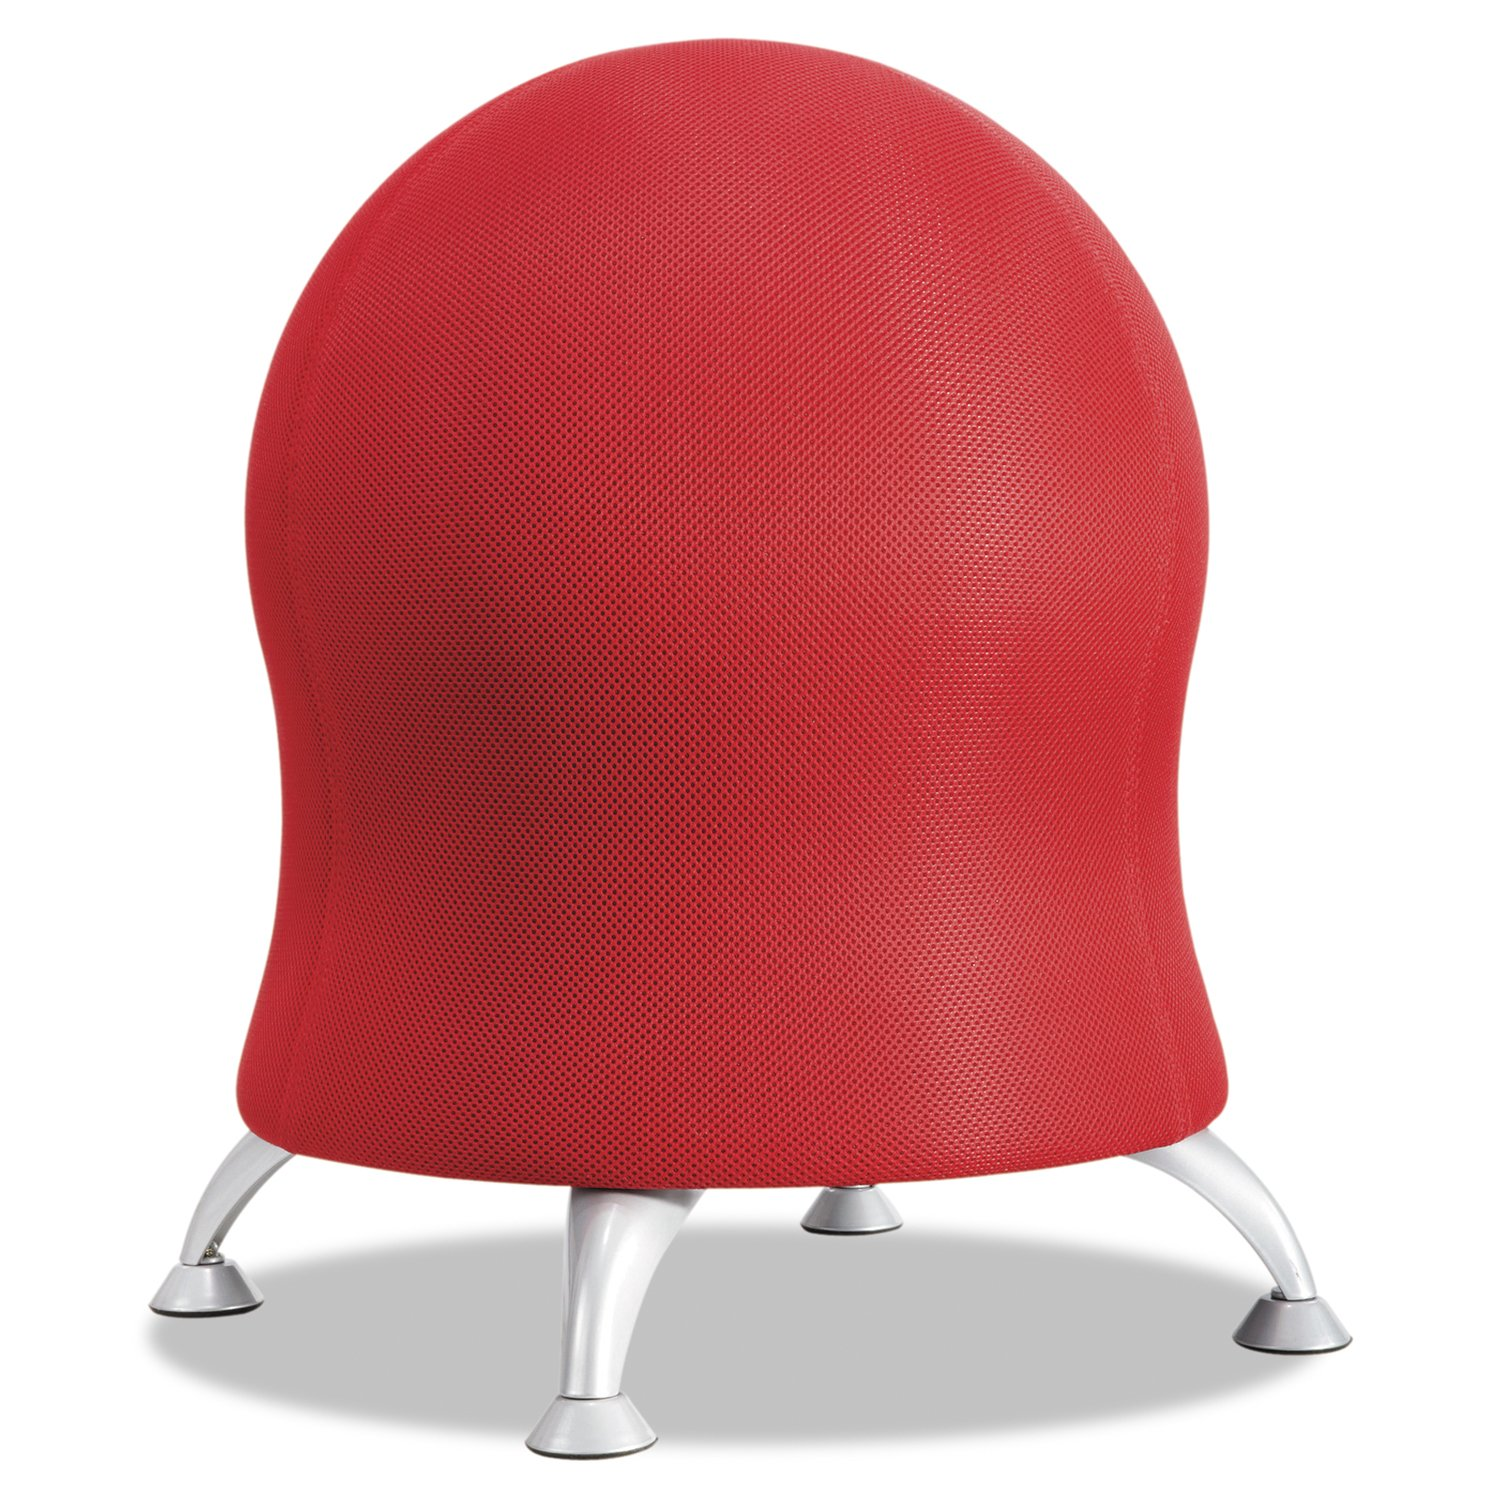 The 4 Best Exercise Ball Chairs – 2017 Reviews and Top Picks